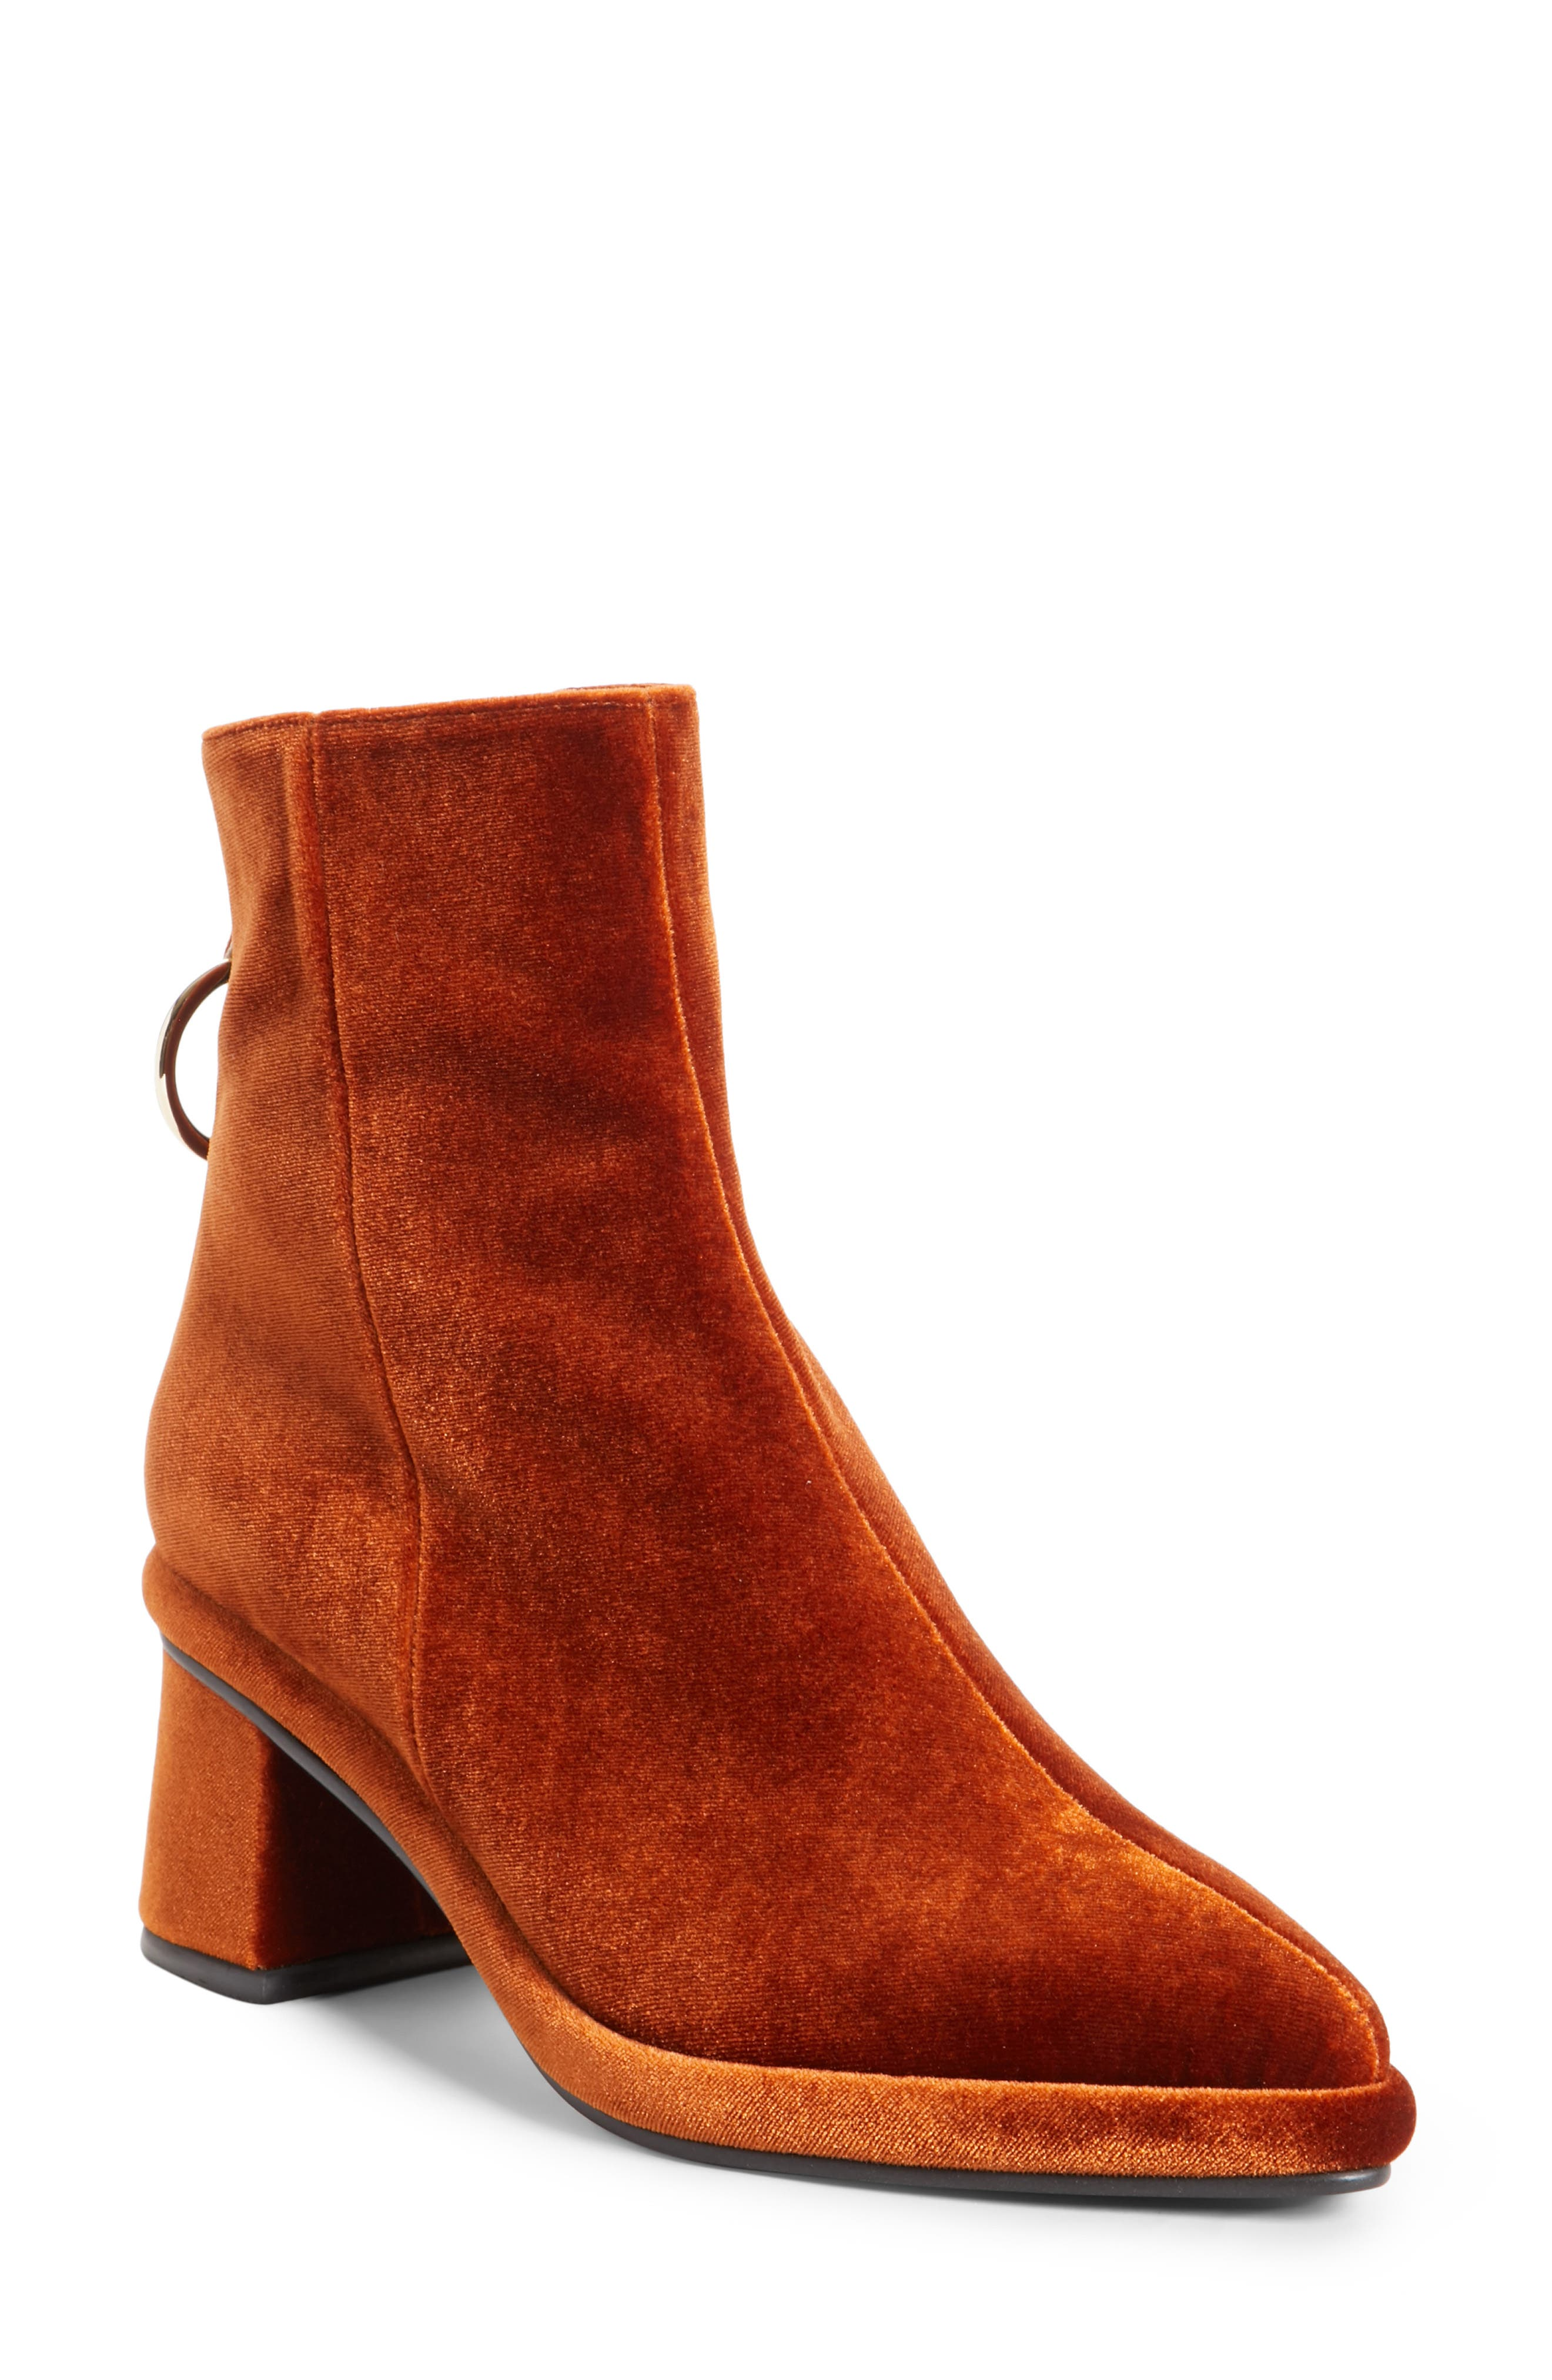 Womens dress boots low heel